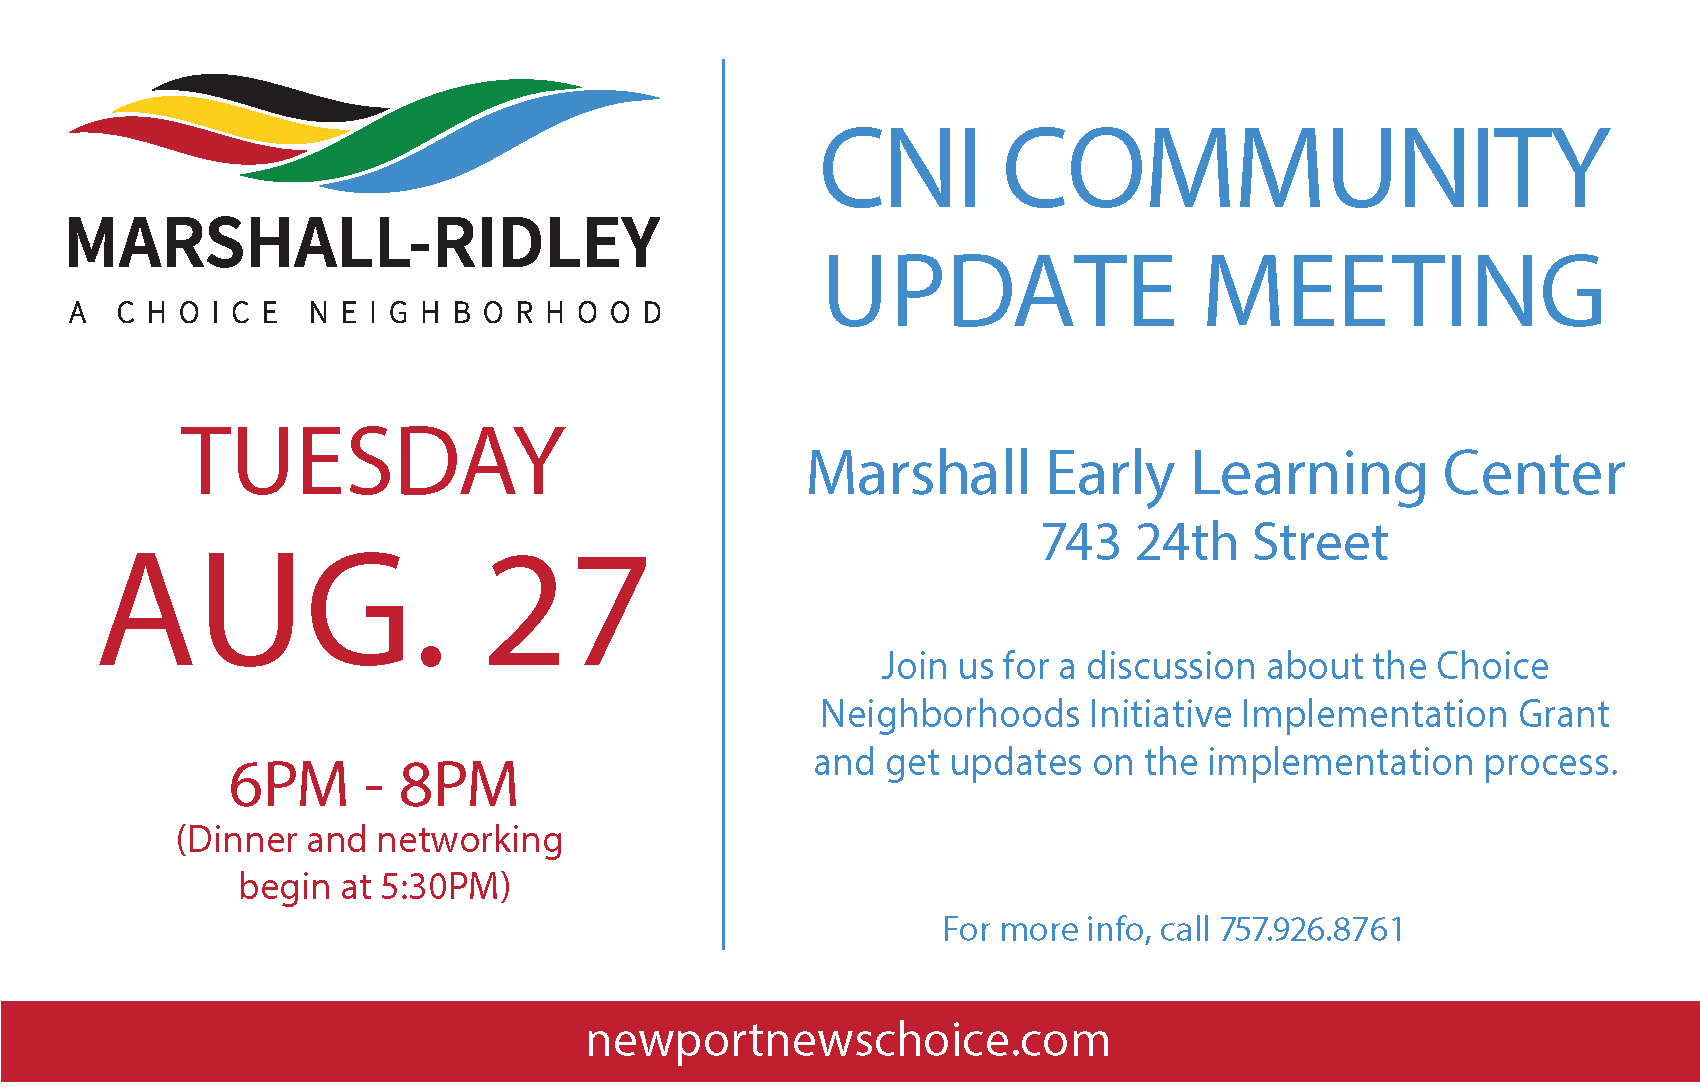 CNI Community Meeting Flyer_8.27.19.png